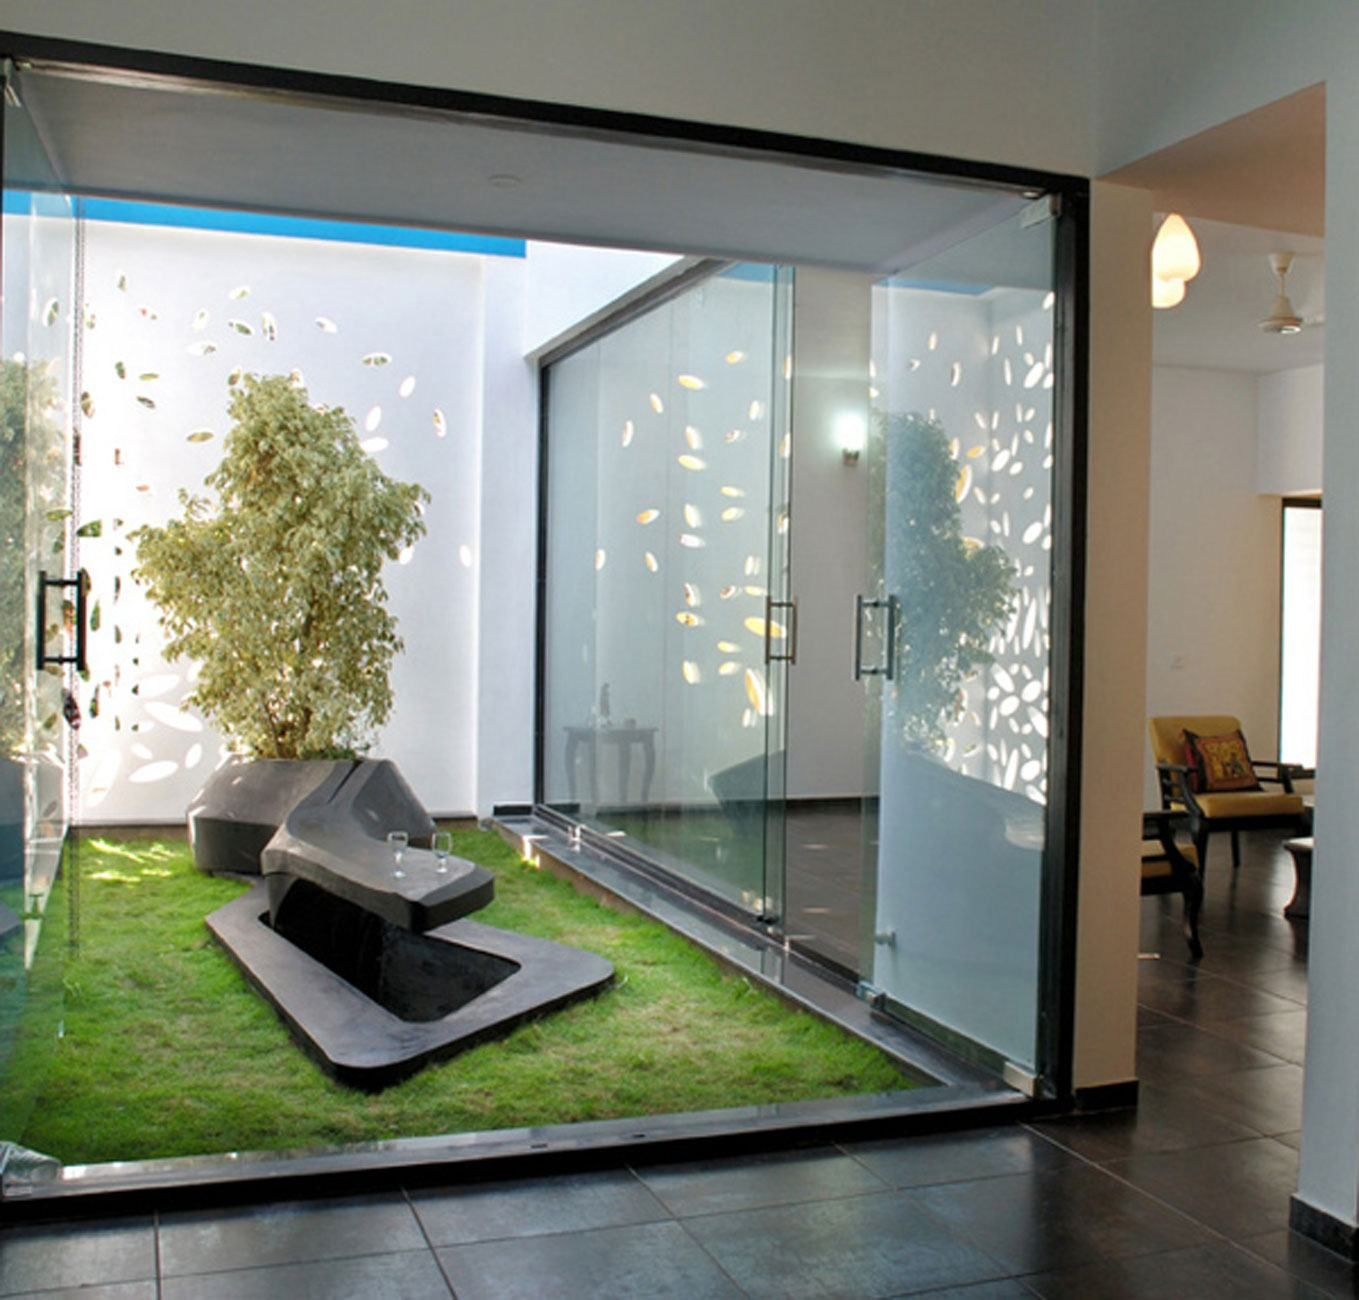 Home designs gallery amazing interior garden with modern for Amazing house interior designs